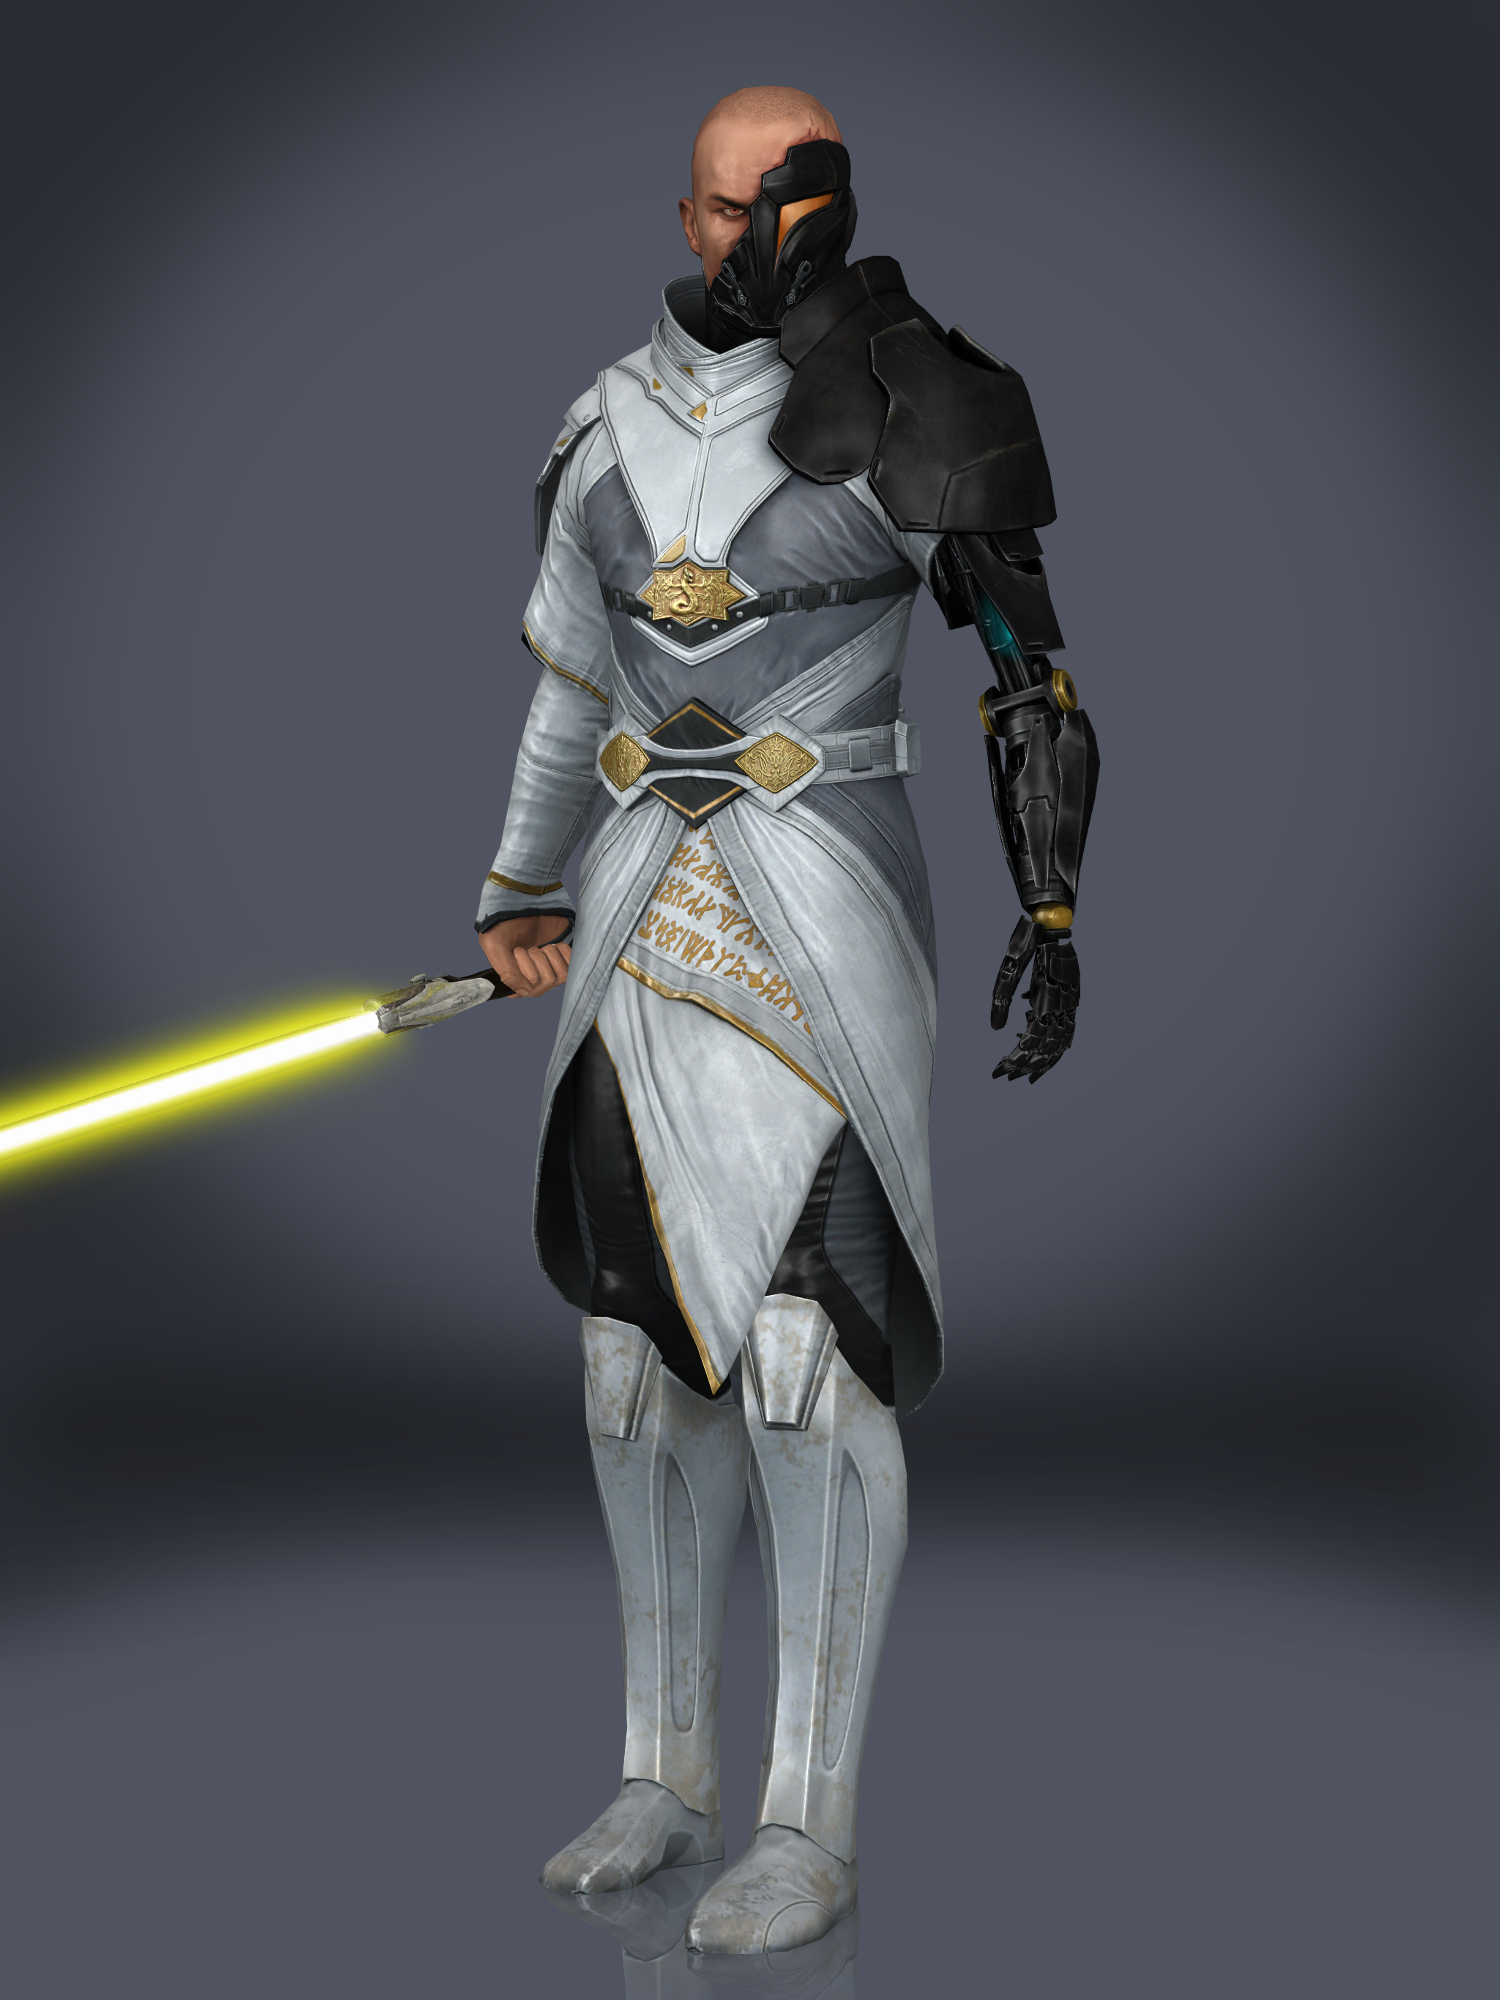 Arcann with his lightsaber